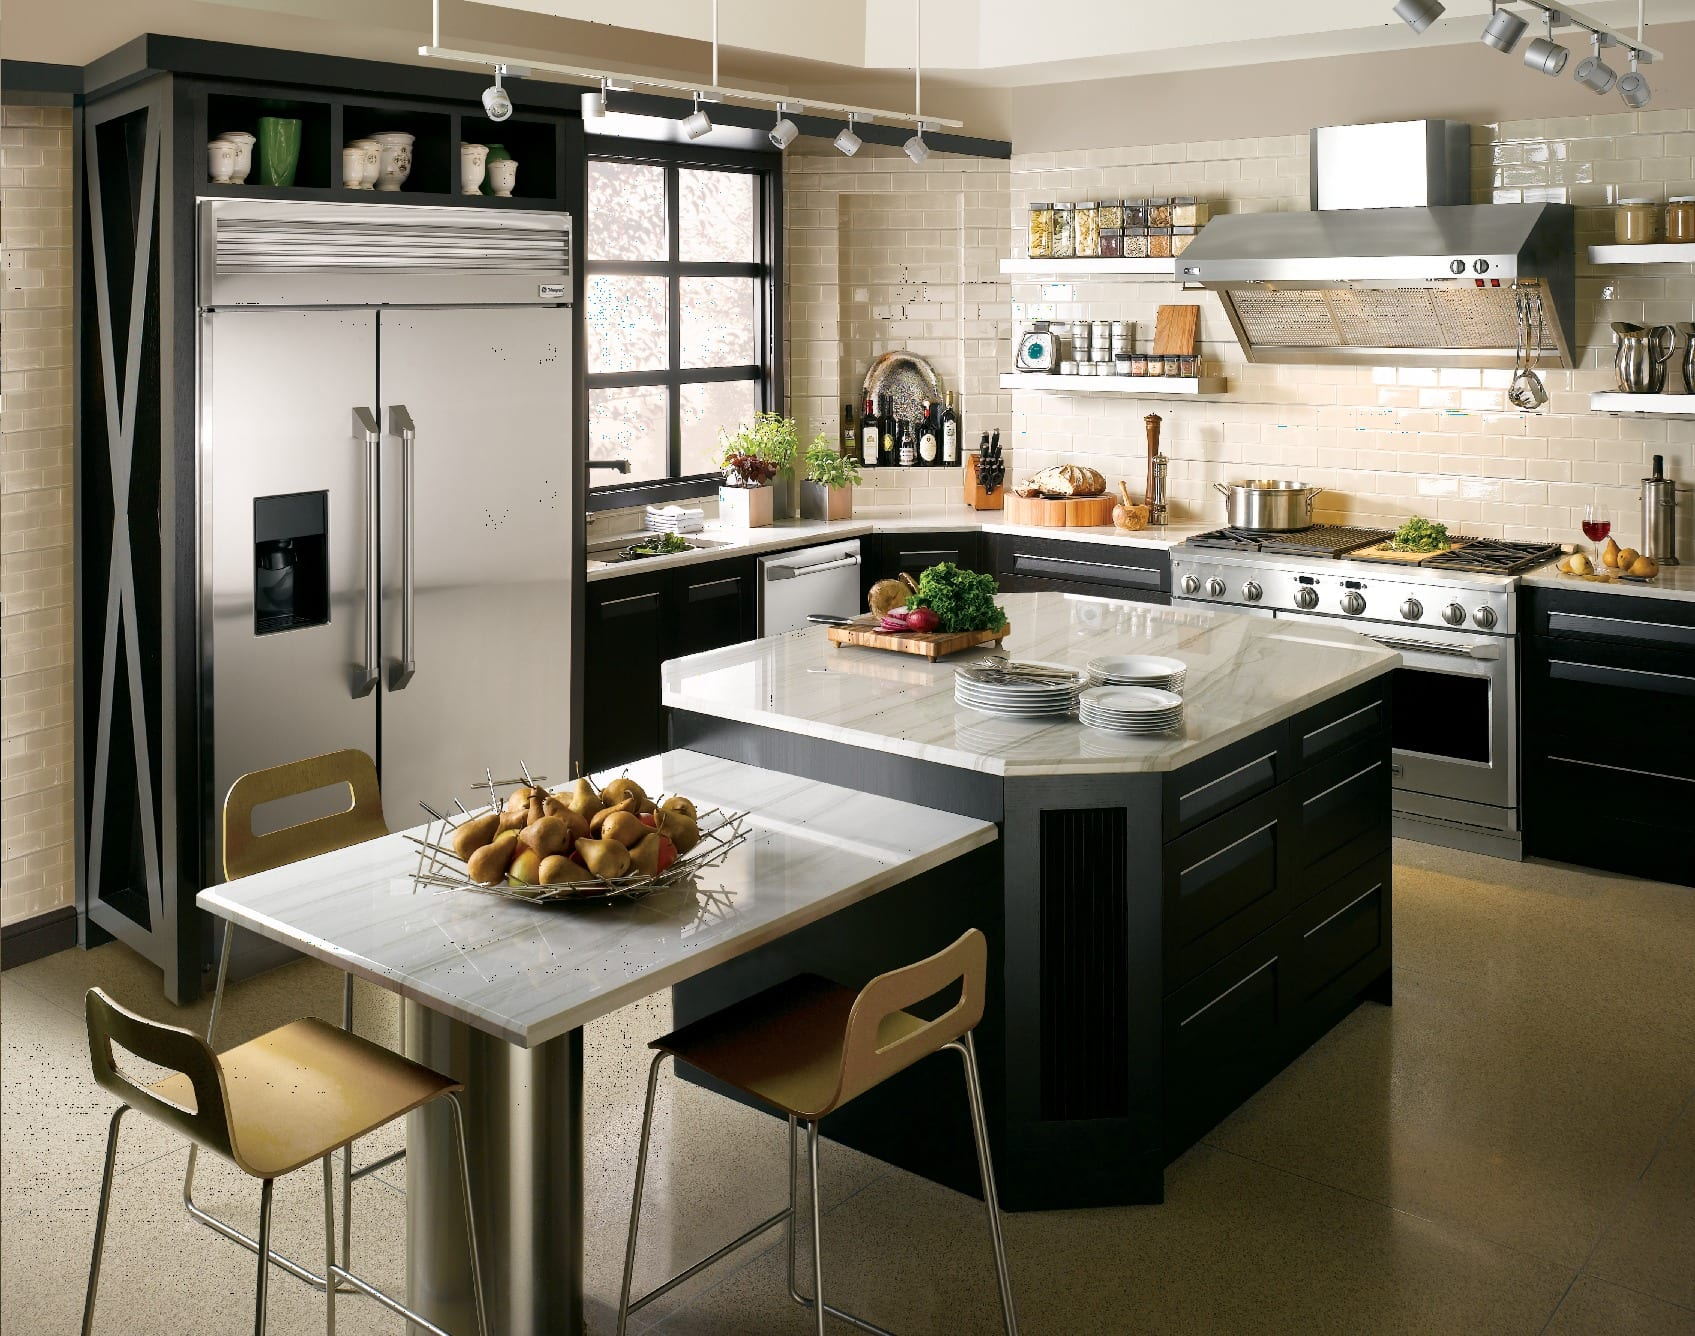 A condo kitchen concept with sleek Monogram appliances.